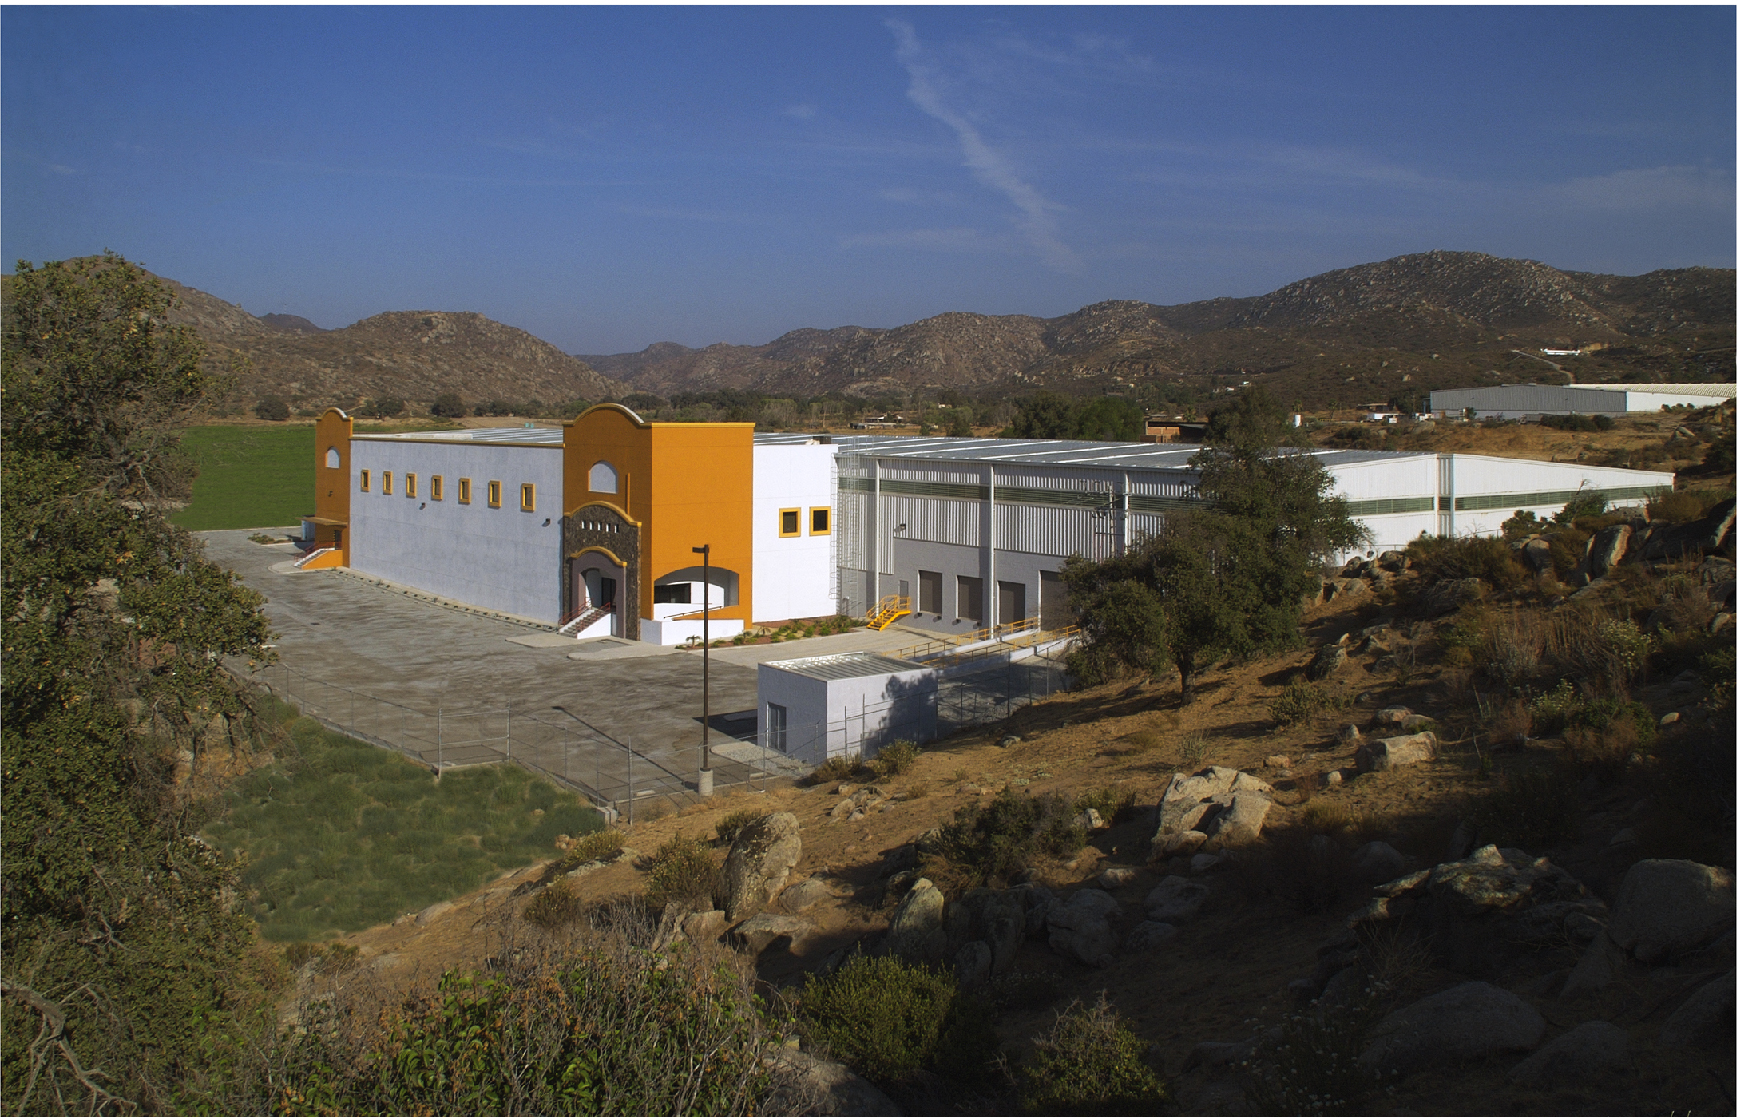 Mid shot of ASI Specialities industrial facility in Tecate, Baja California.